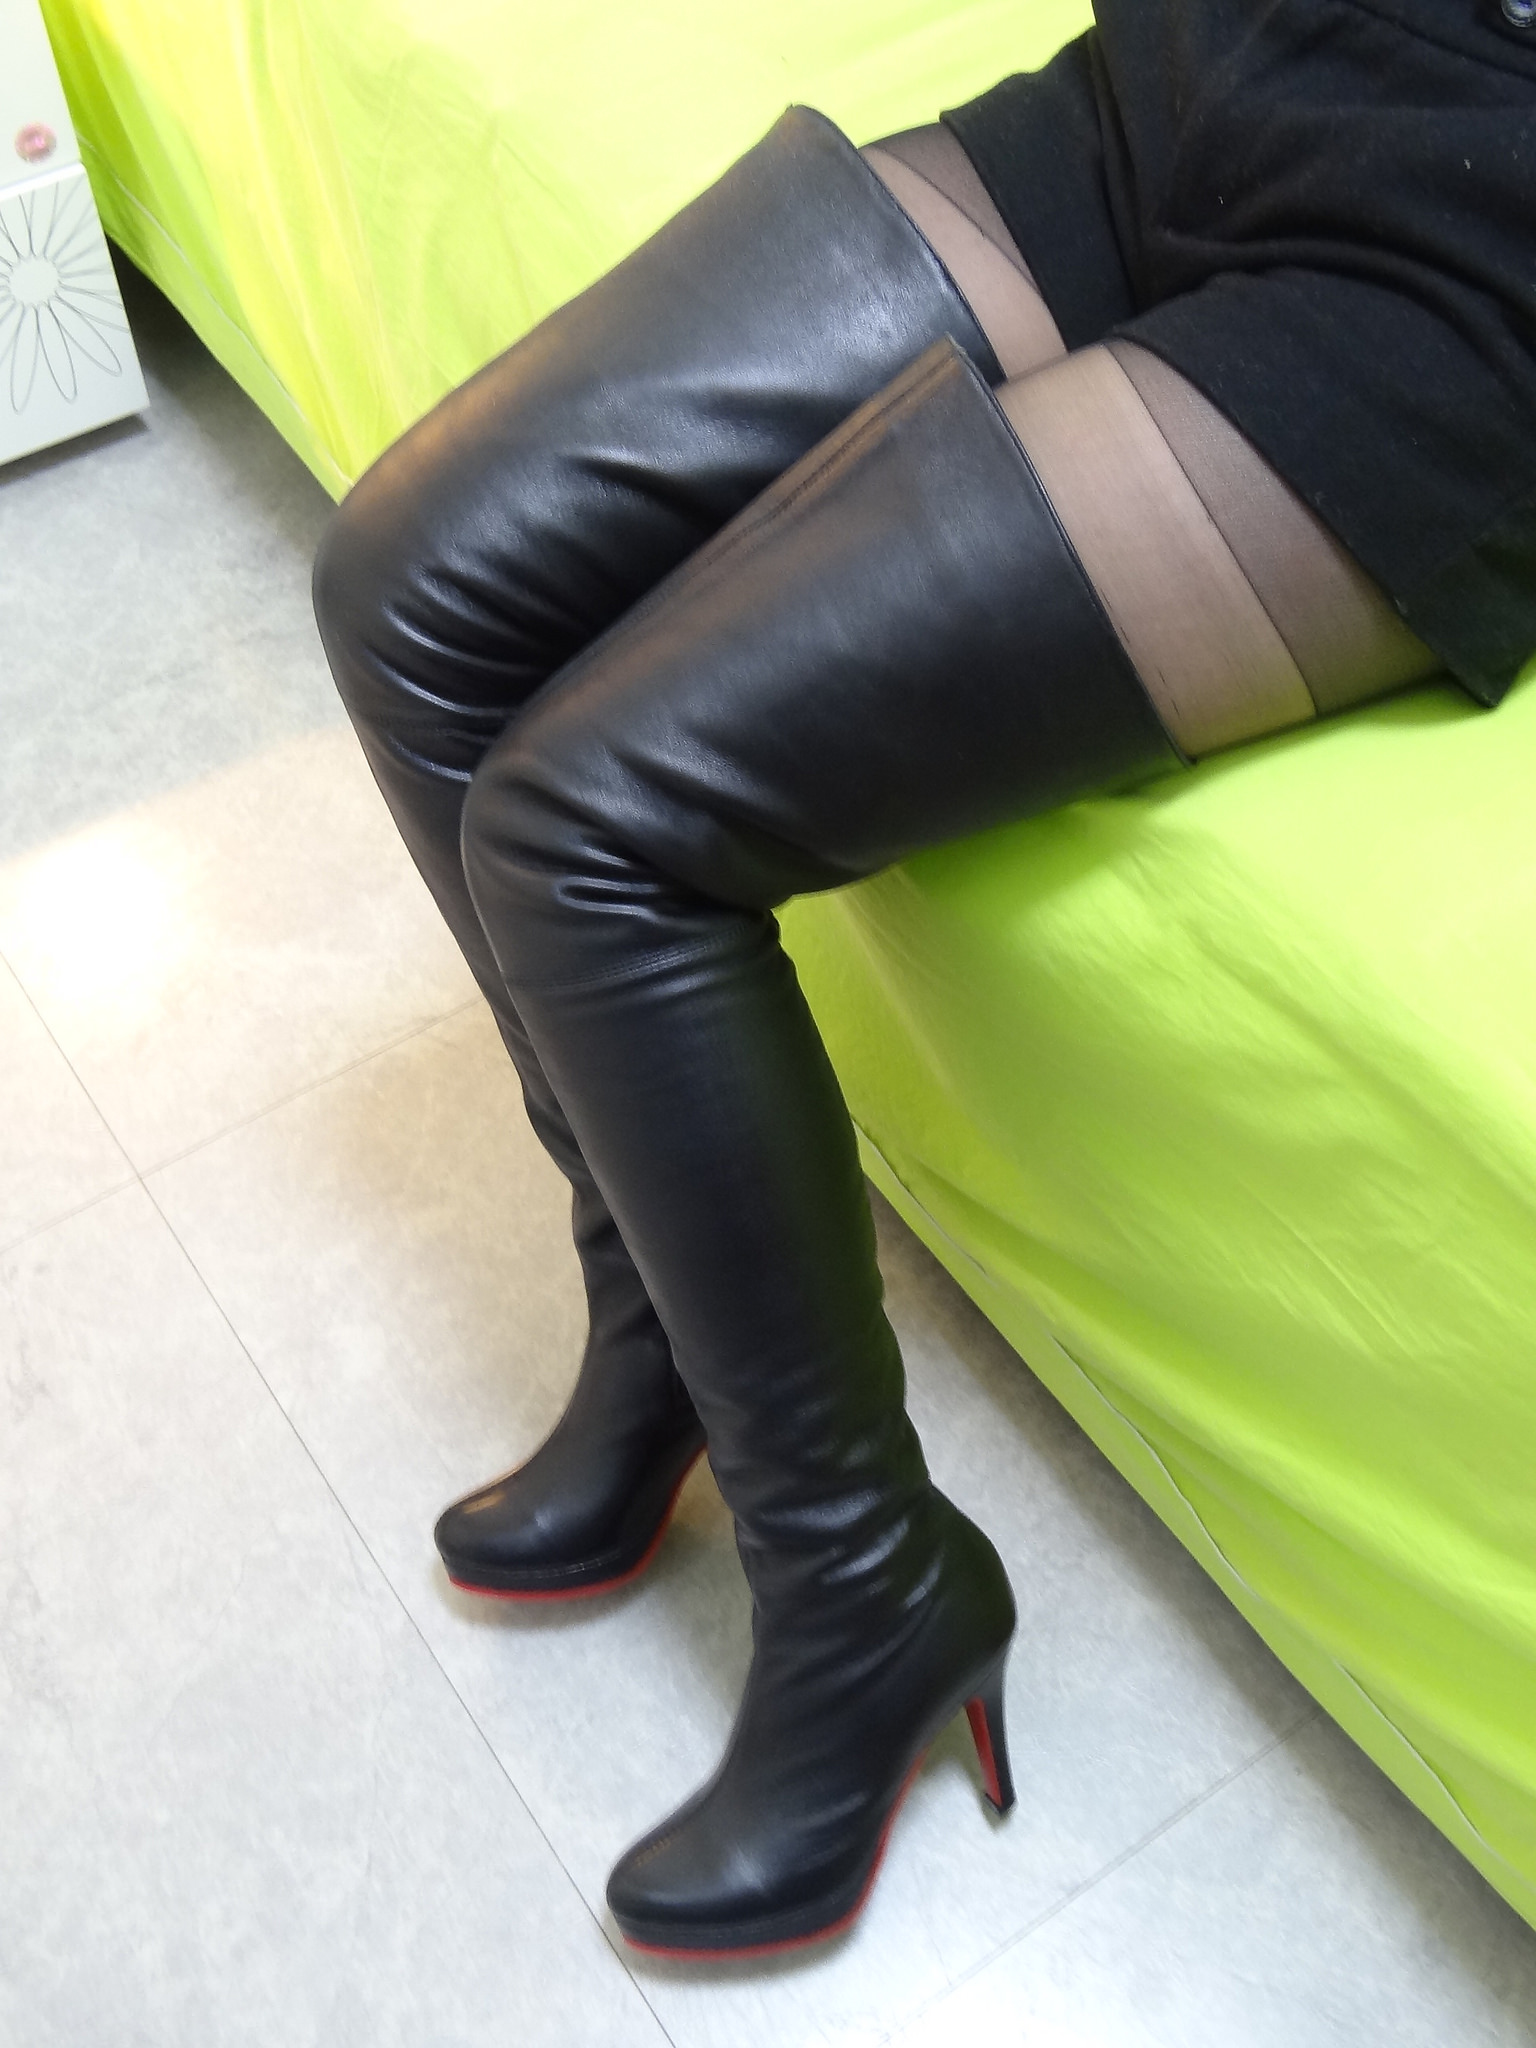 Please Identify These Boots X - Hhplace Cafe  - General Chit Chat